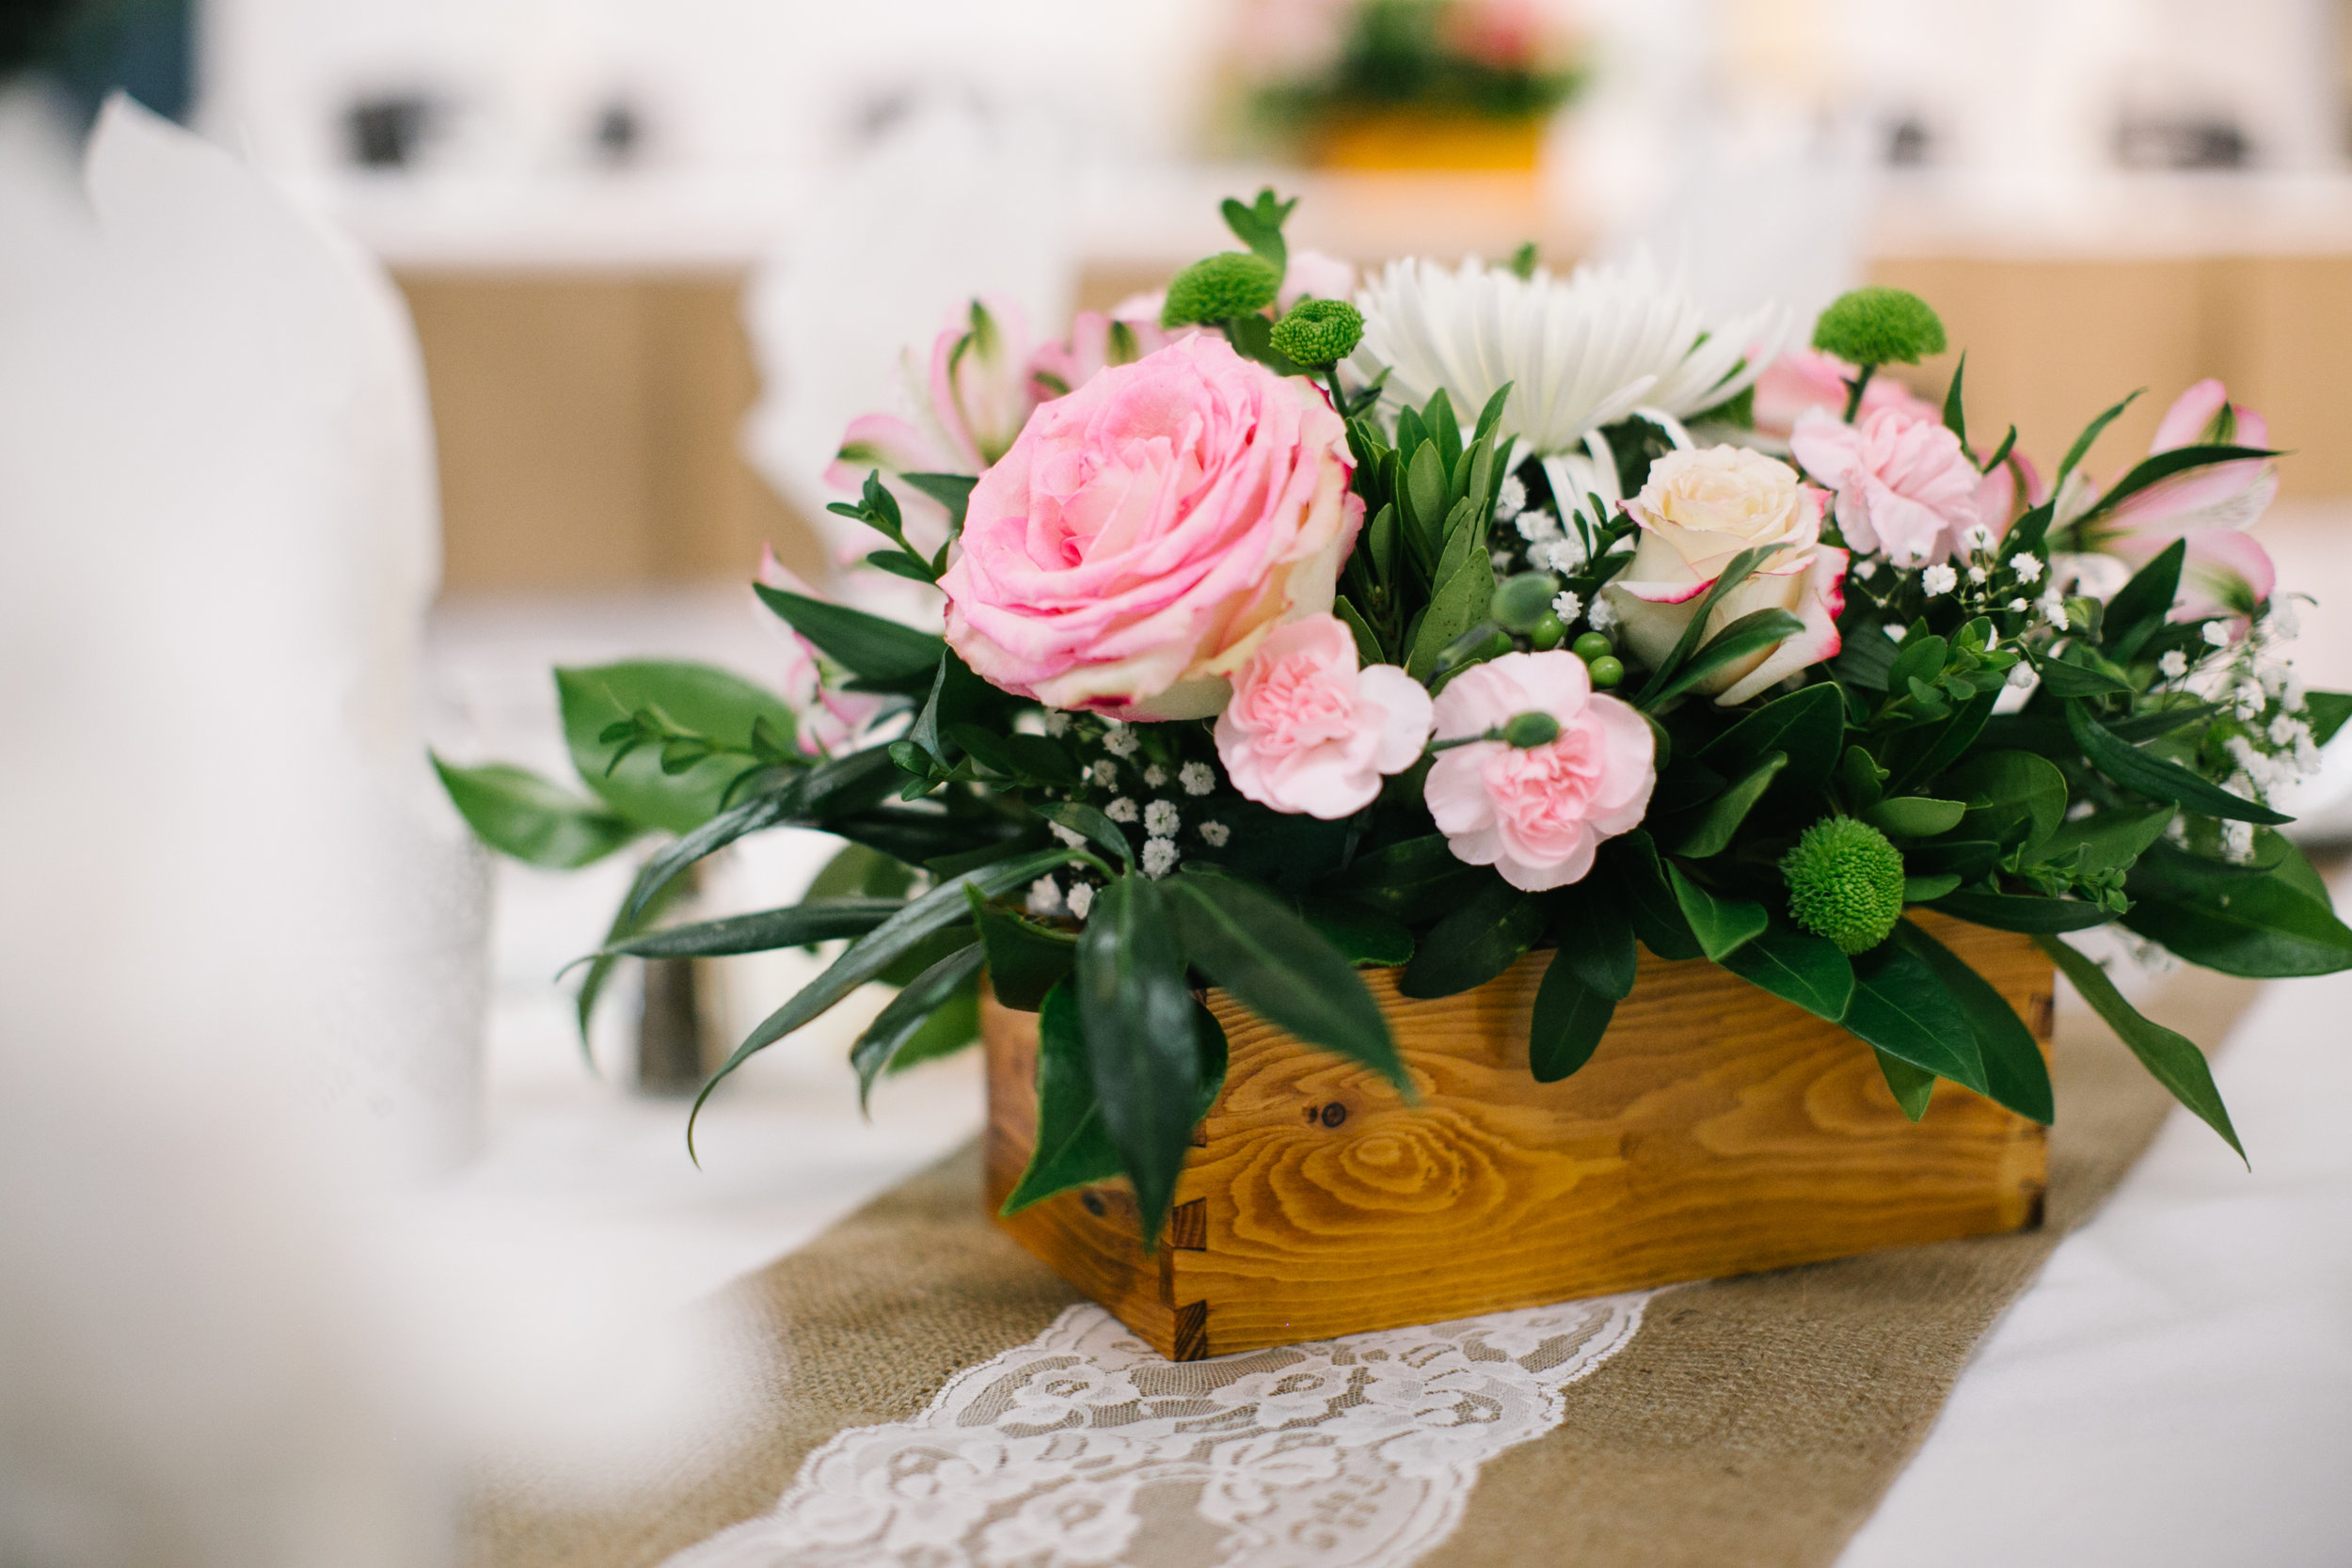 Wedding centrepiece by Floral design by Lili, Abbotsford wedding florist.